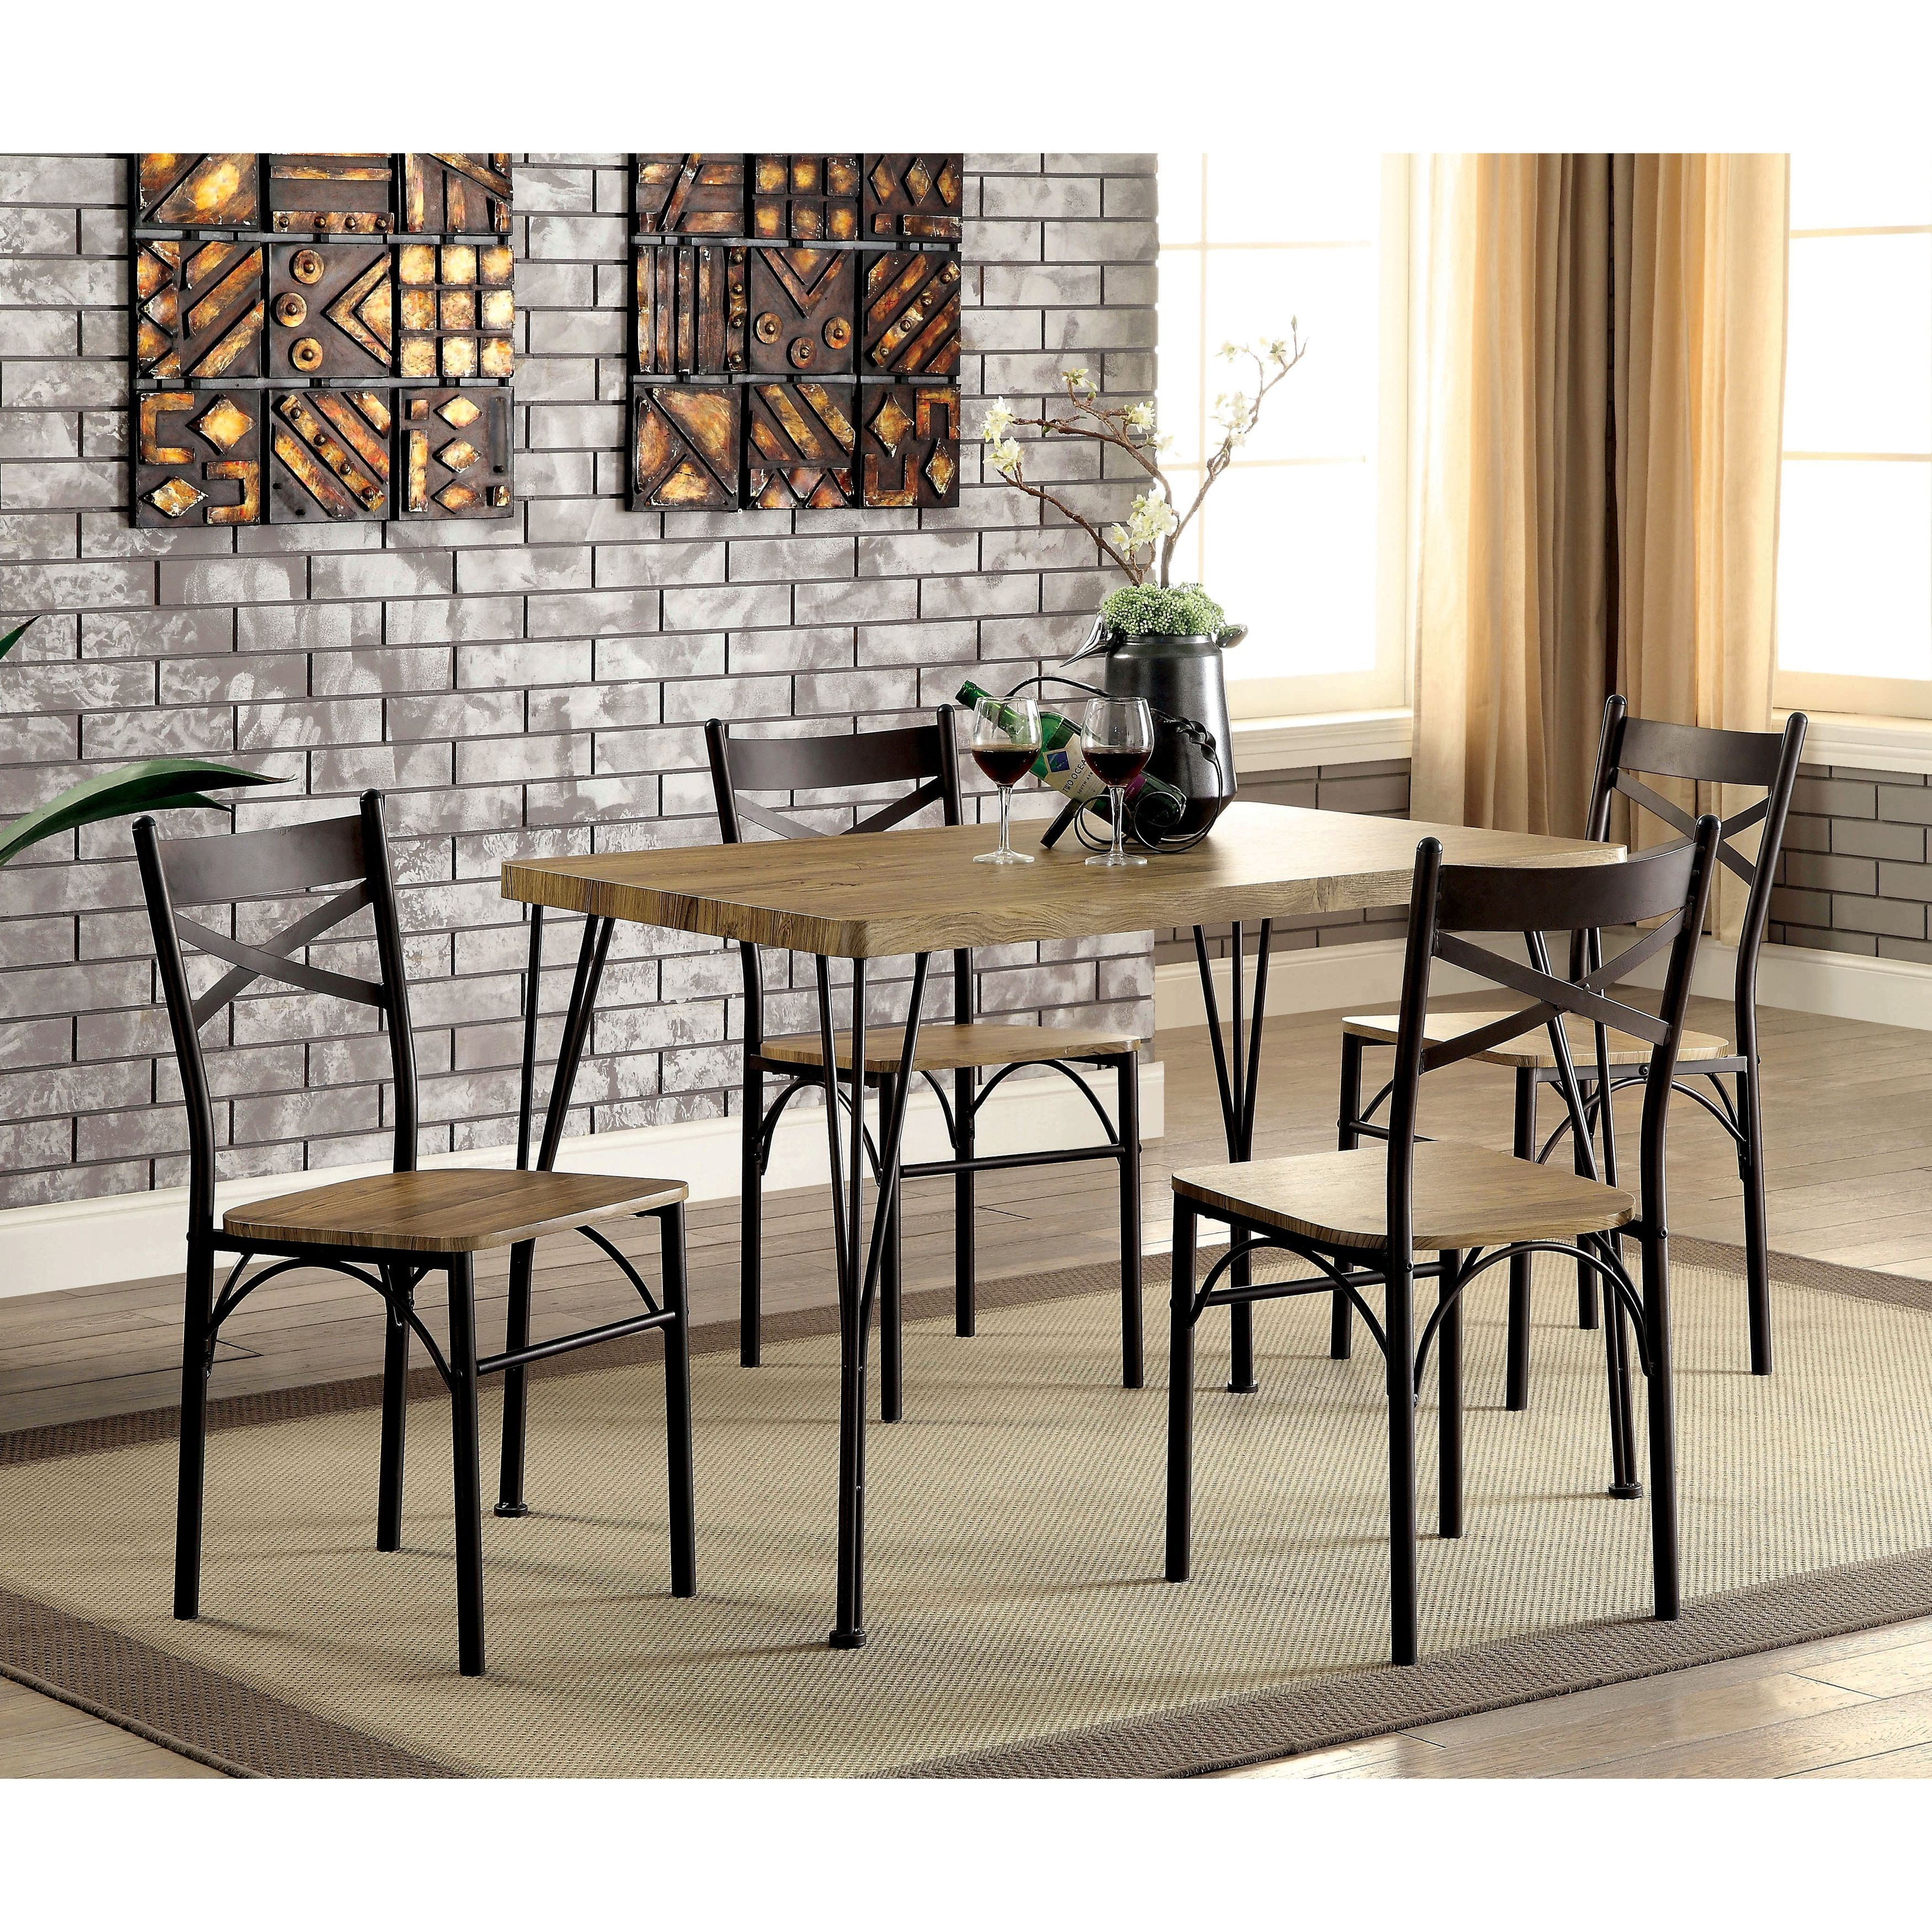 Furniture Of America Hathway Industrial 5 Piece Dark Bronze Small Inside Best And Newest Casiano 5 Piece Dining Sets (View 17 of 20)